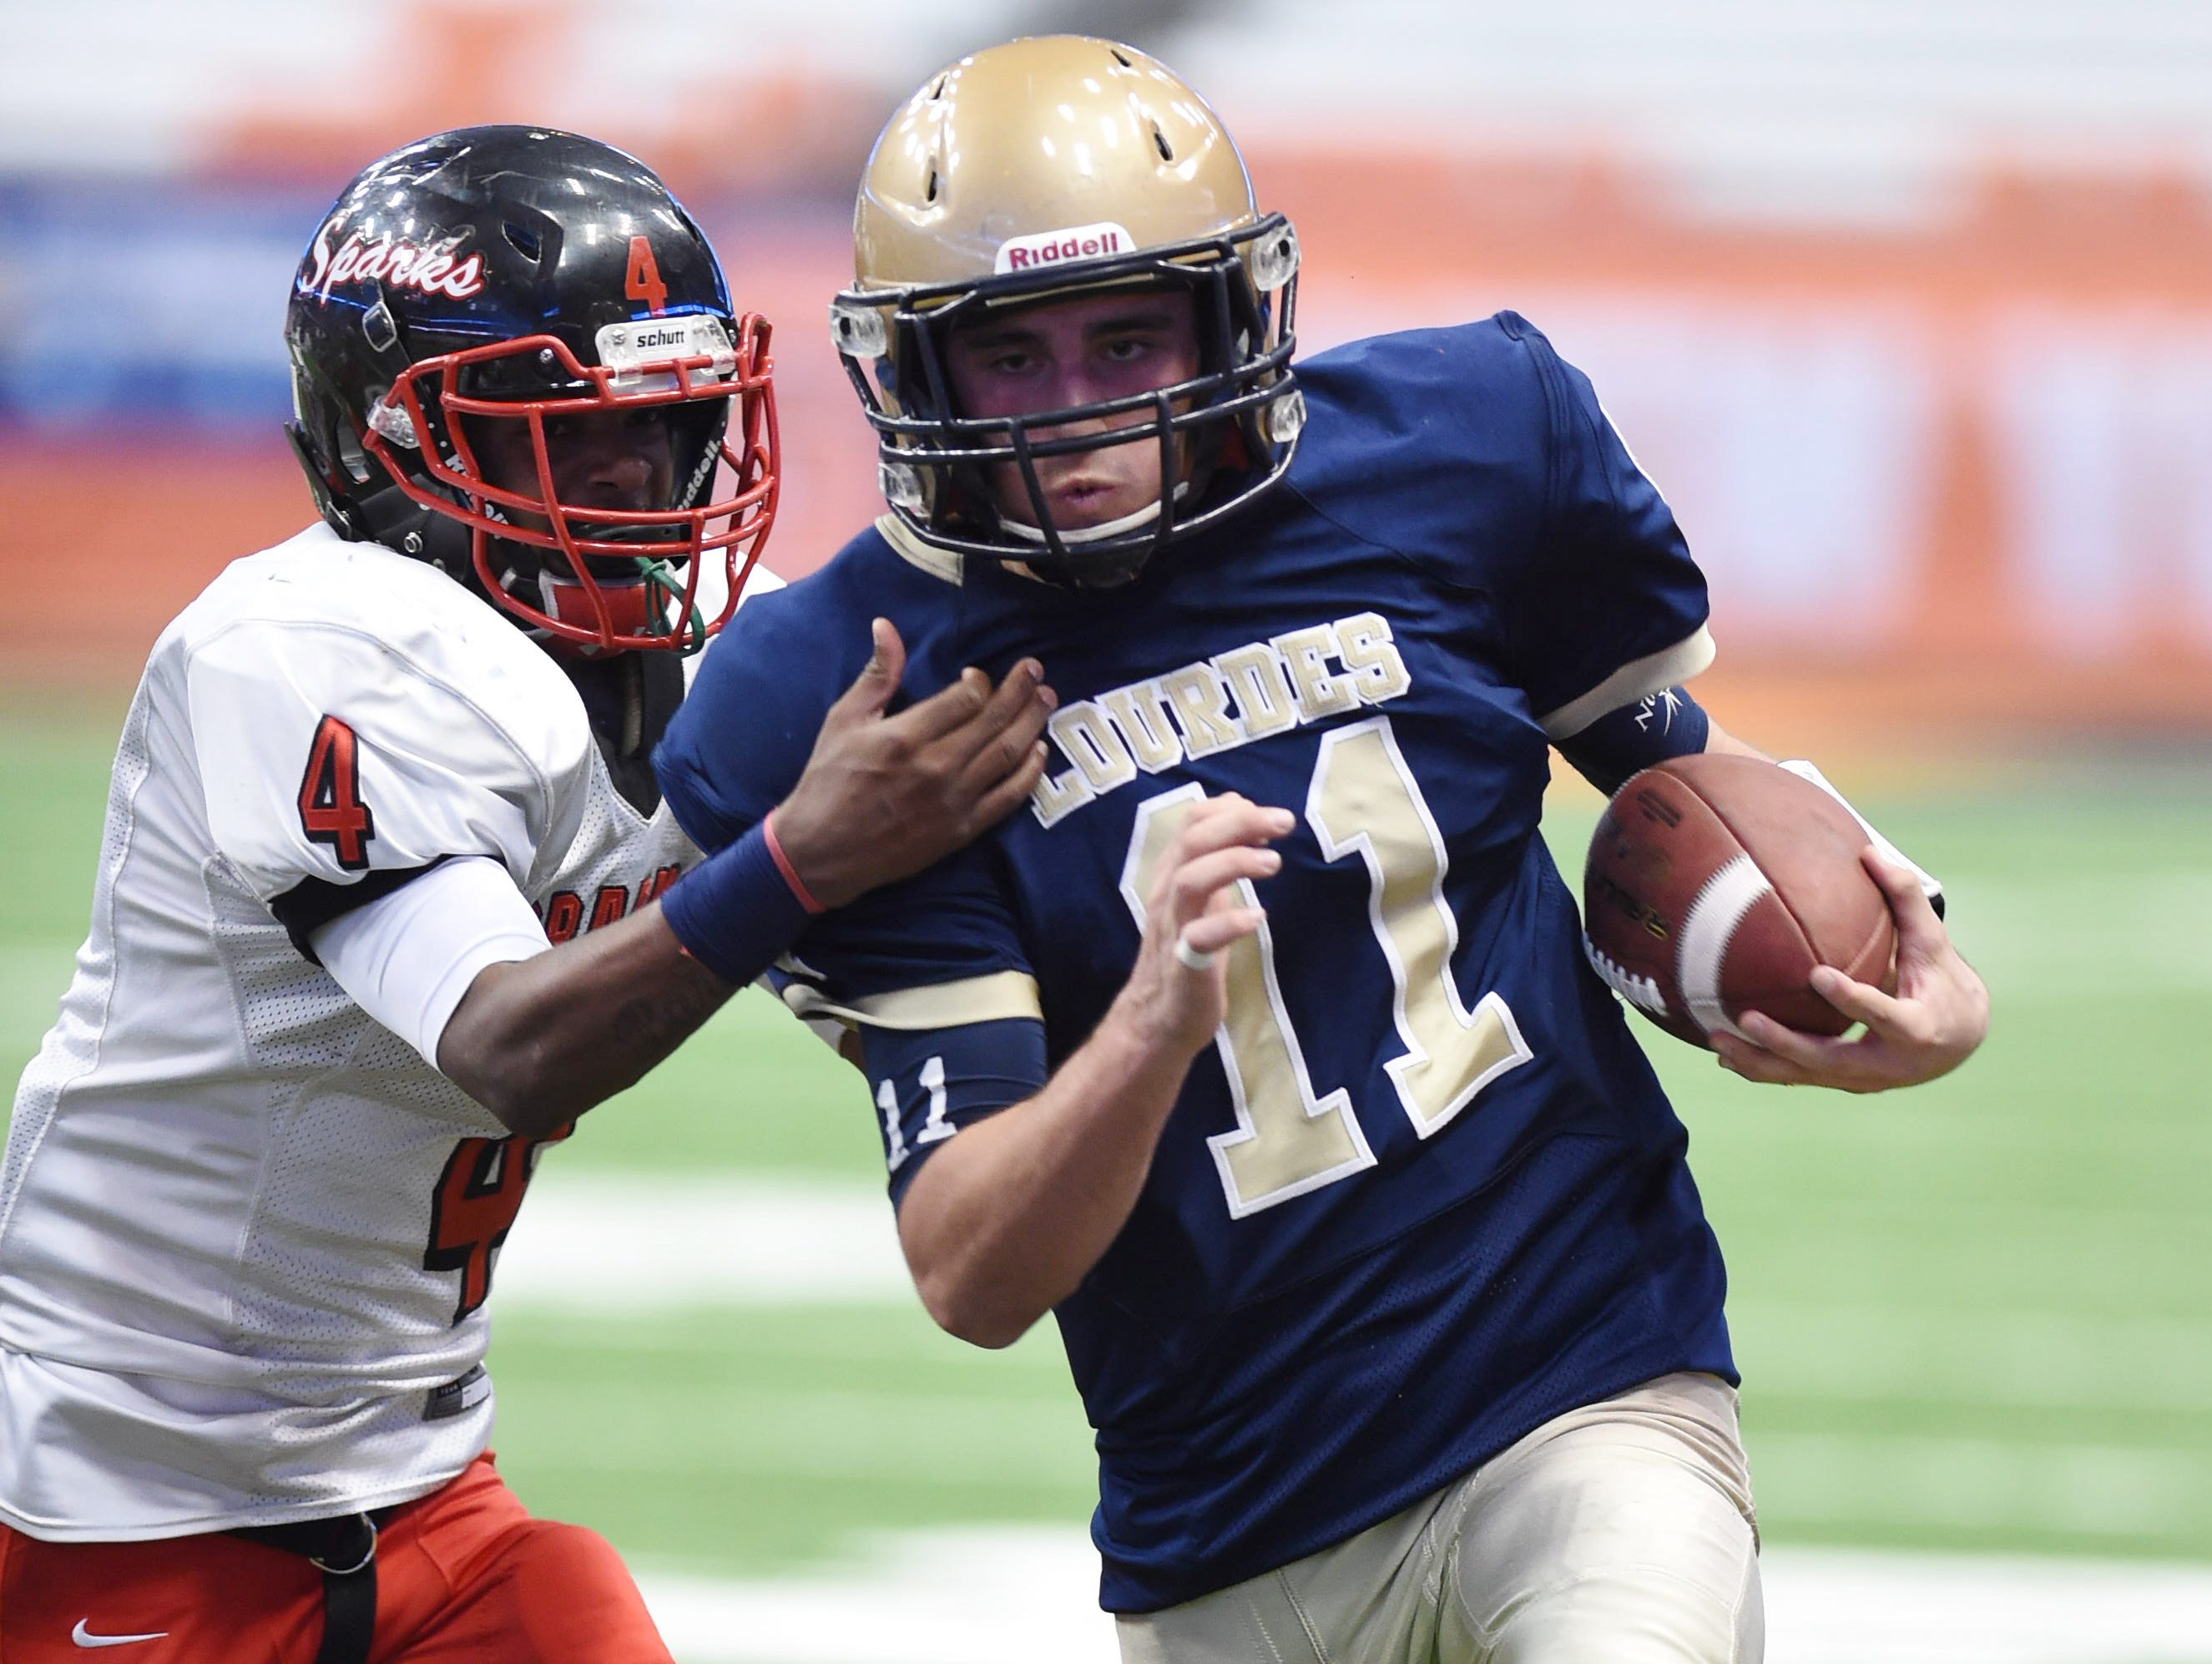 Lourdes' Dean Rotger runs the ball ahead of South Park's Leelan Coleman during the New York State Championship final in Syracuse on Friday.